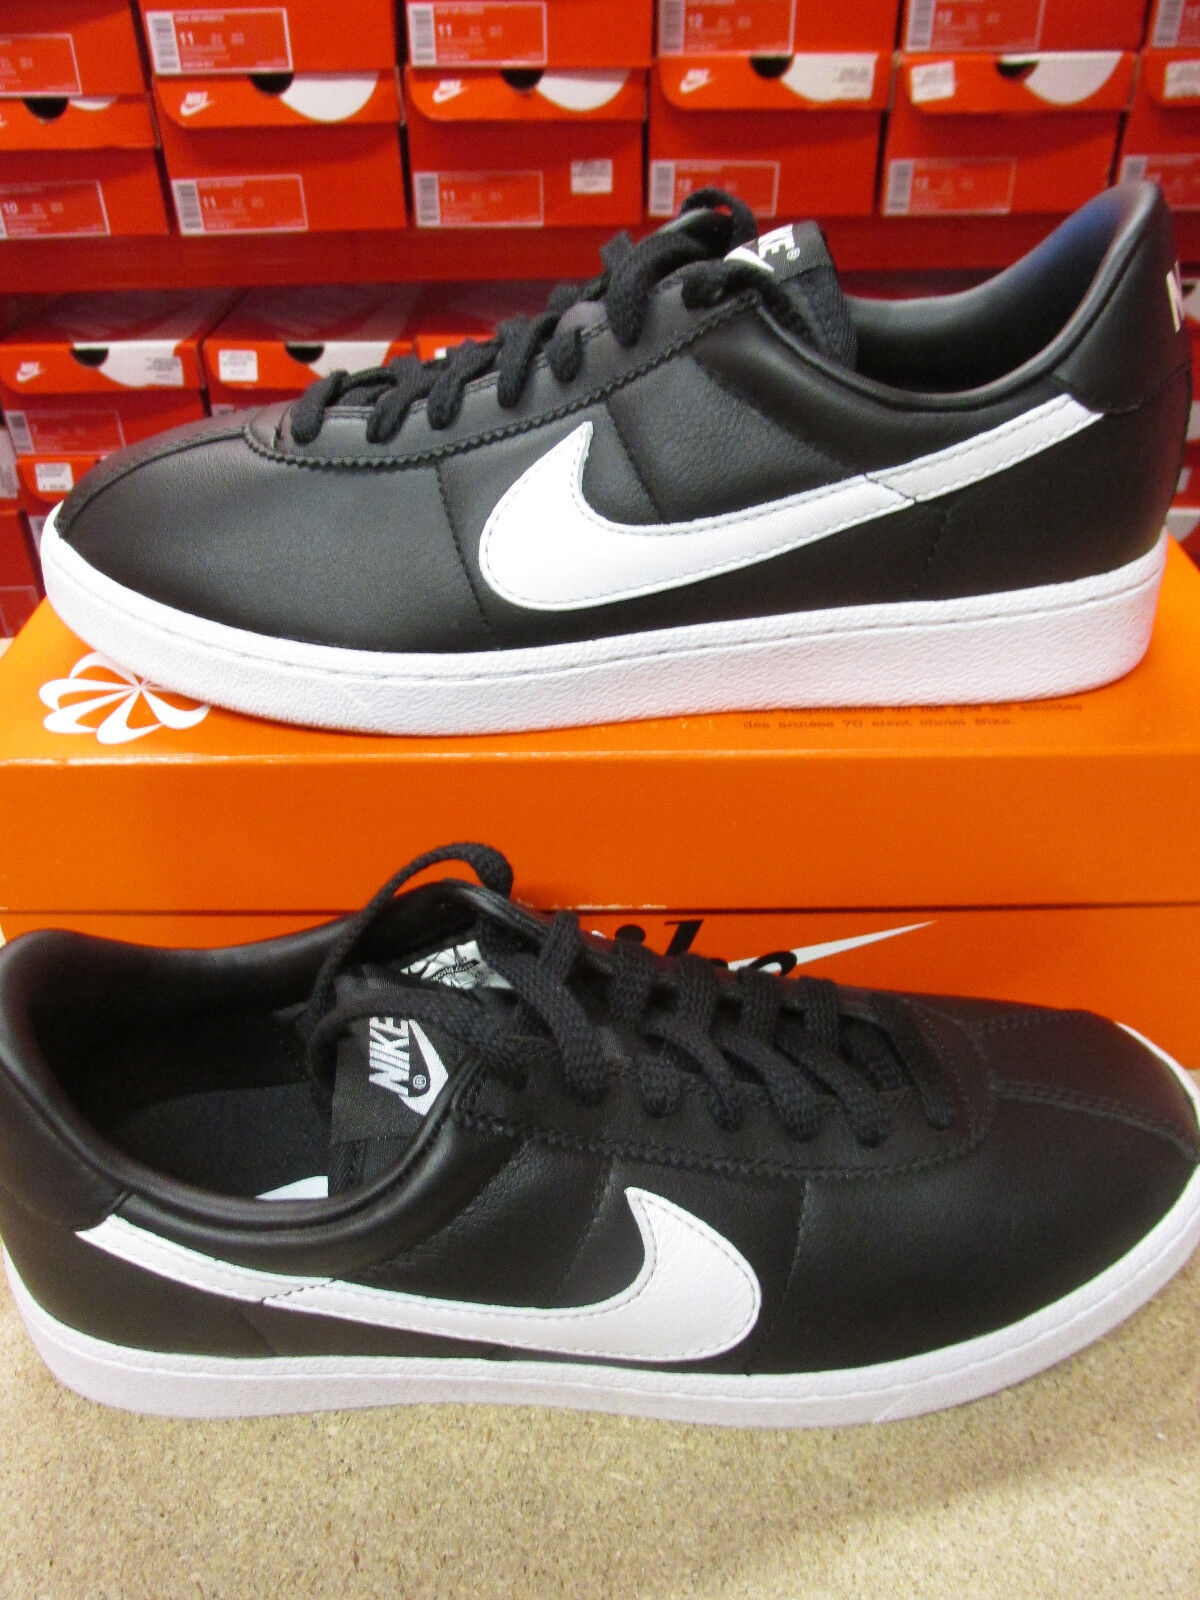 Nike Bruin QS Mens Trainers 842956 001 Sneakers Shoes